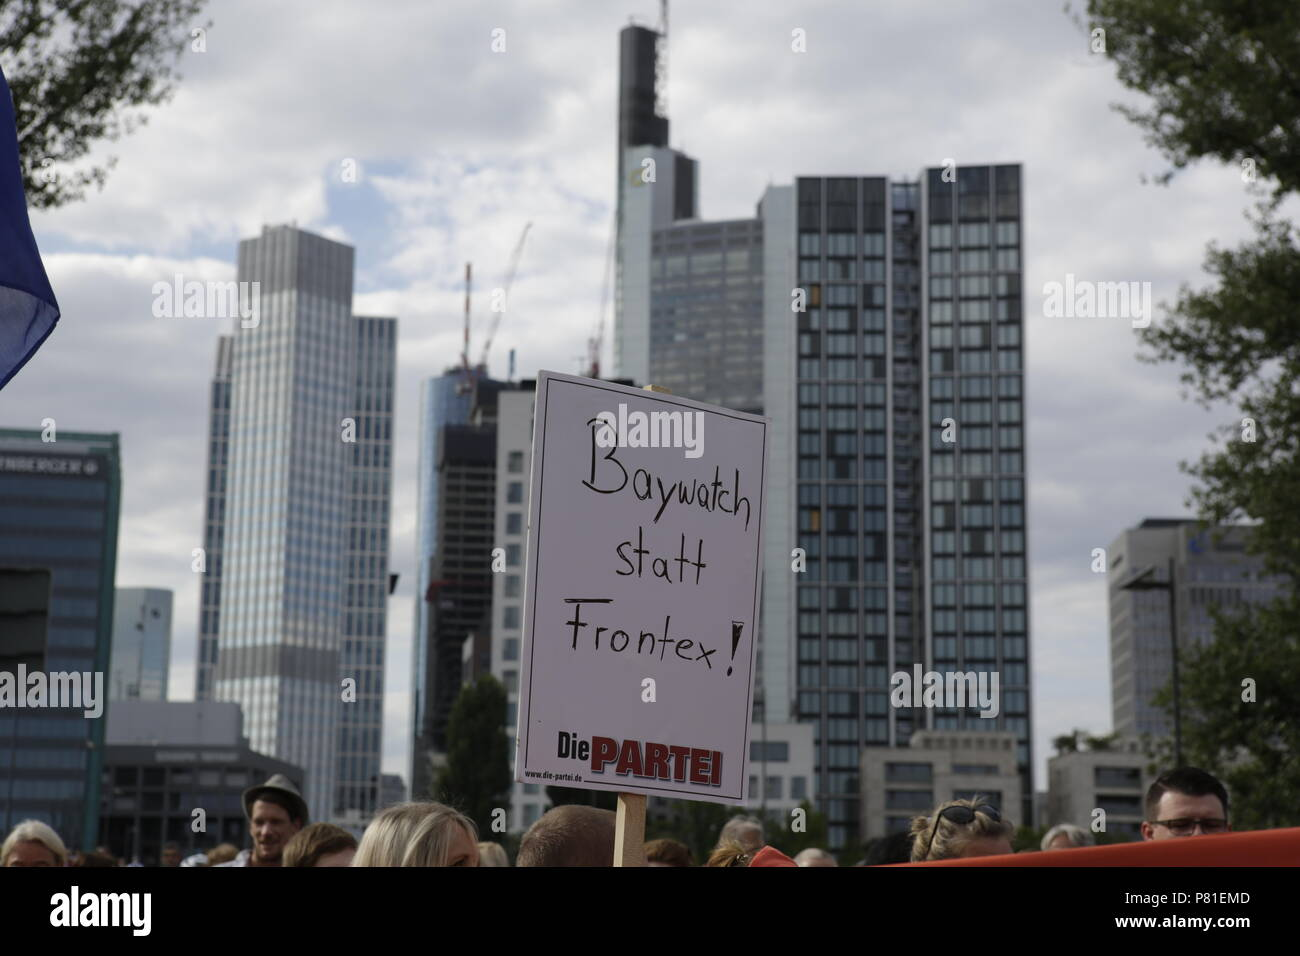 Frankfurt, Germany. 07th July, 2018. A protester holds a sign that reads 'Baywatch instead of Frontex!' with the Frankfurt skyline in the background. Around 800 protesters marched through Frankfurt to protest against the politics of the German government and the EU of closed borders and the prevention of sea rescue operations of NGOs, by grounding their ships in Malta, that causes refugees to drown in the Mediterranean. They called for the Mayor of Frankfurt to declare Frankfurt a safe haven city for refugees from the Mediterranean. The protest was part of the German wide Seebrucke (Sea bridge Stock Photo